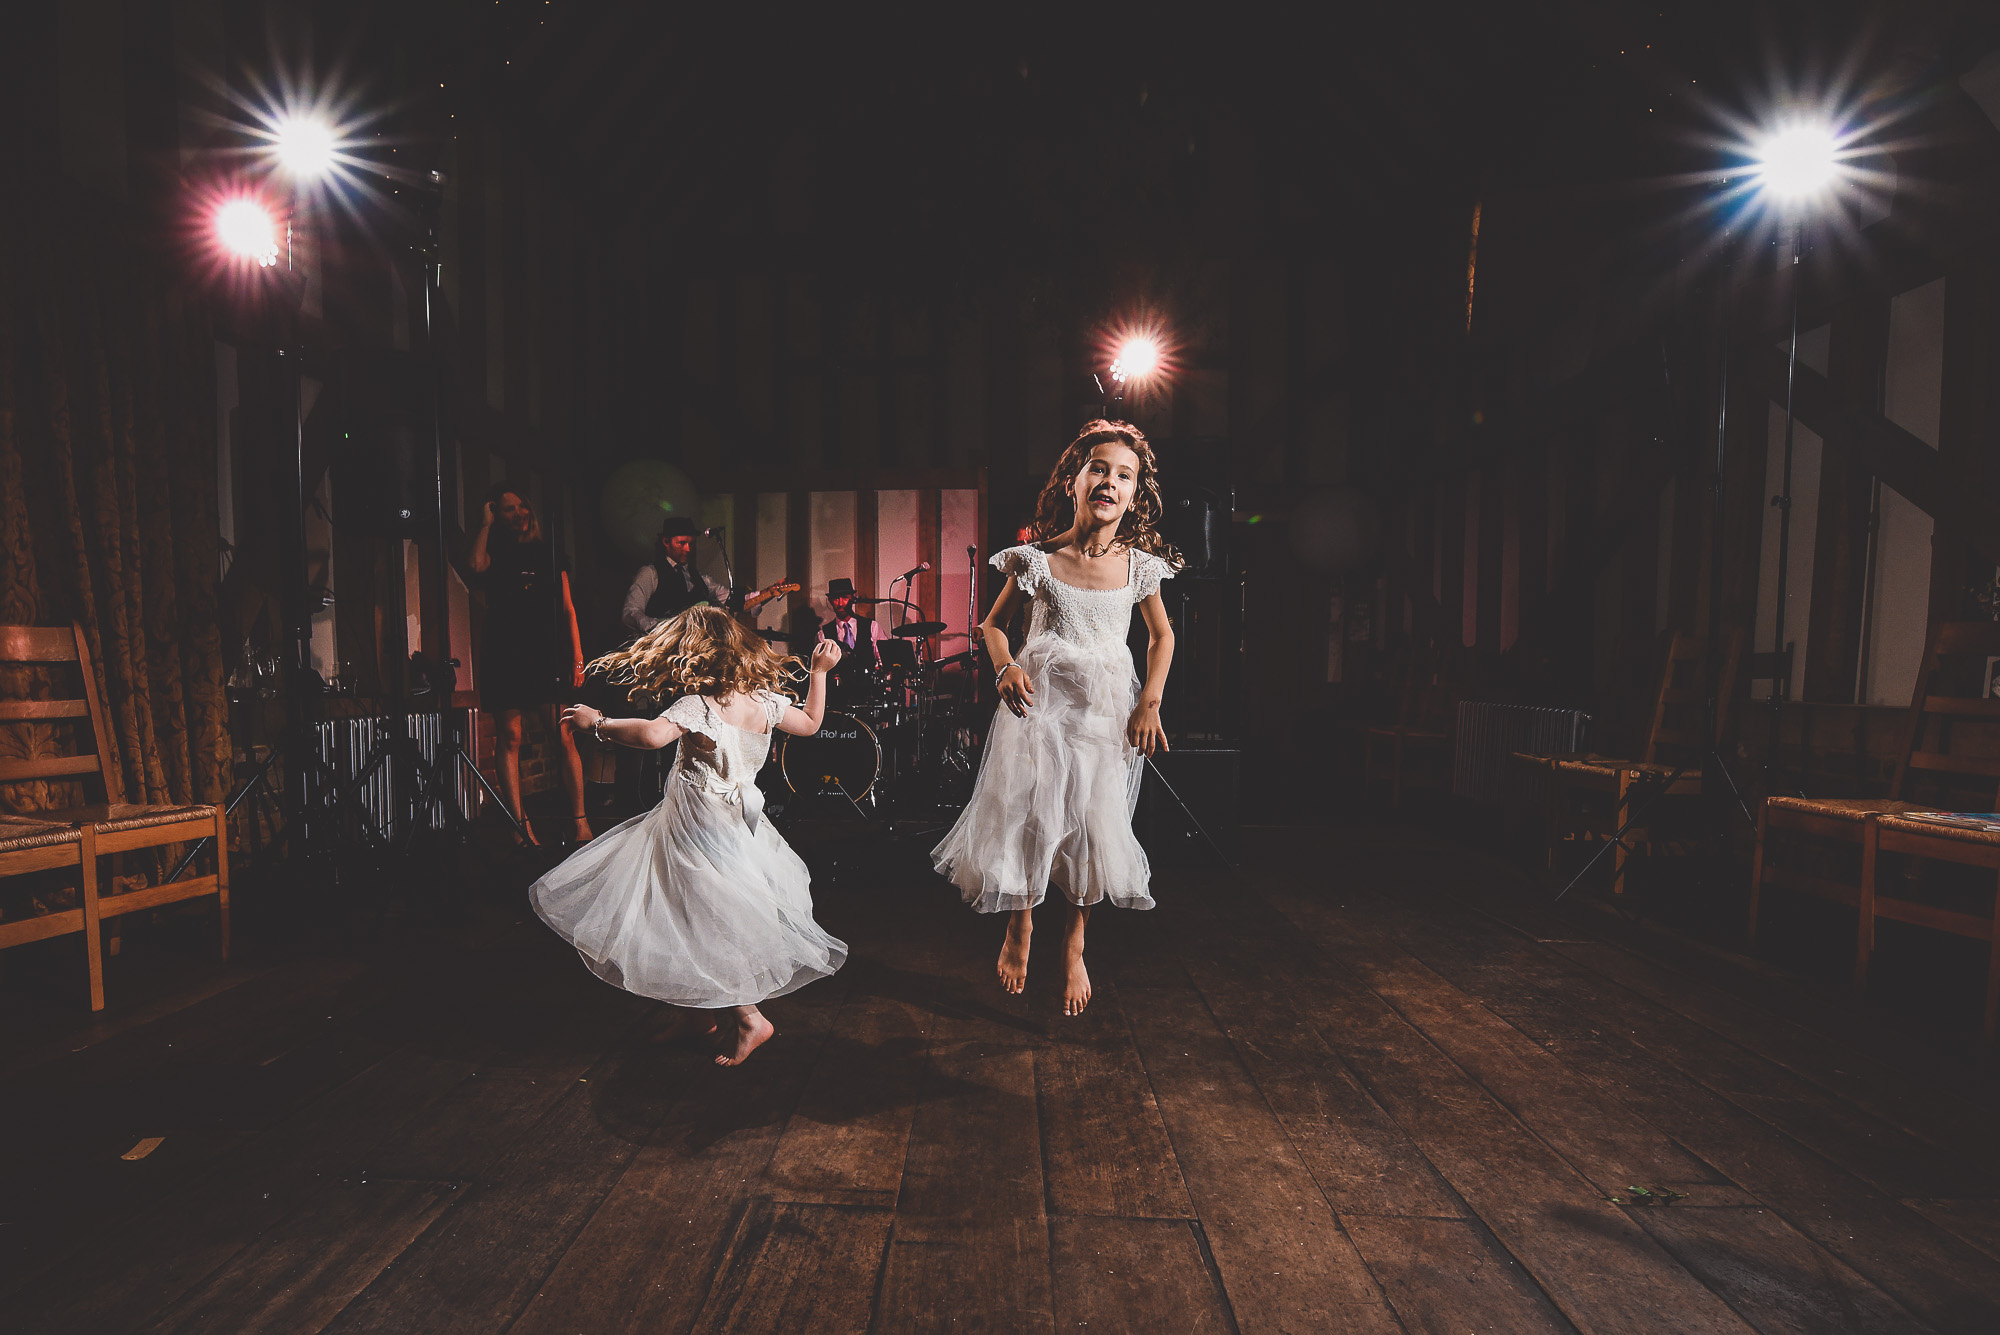 Gate Street Barn Wedding Photography | Nikki & Rich Gate Street Barn Wedding Photyography 054